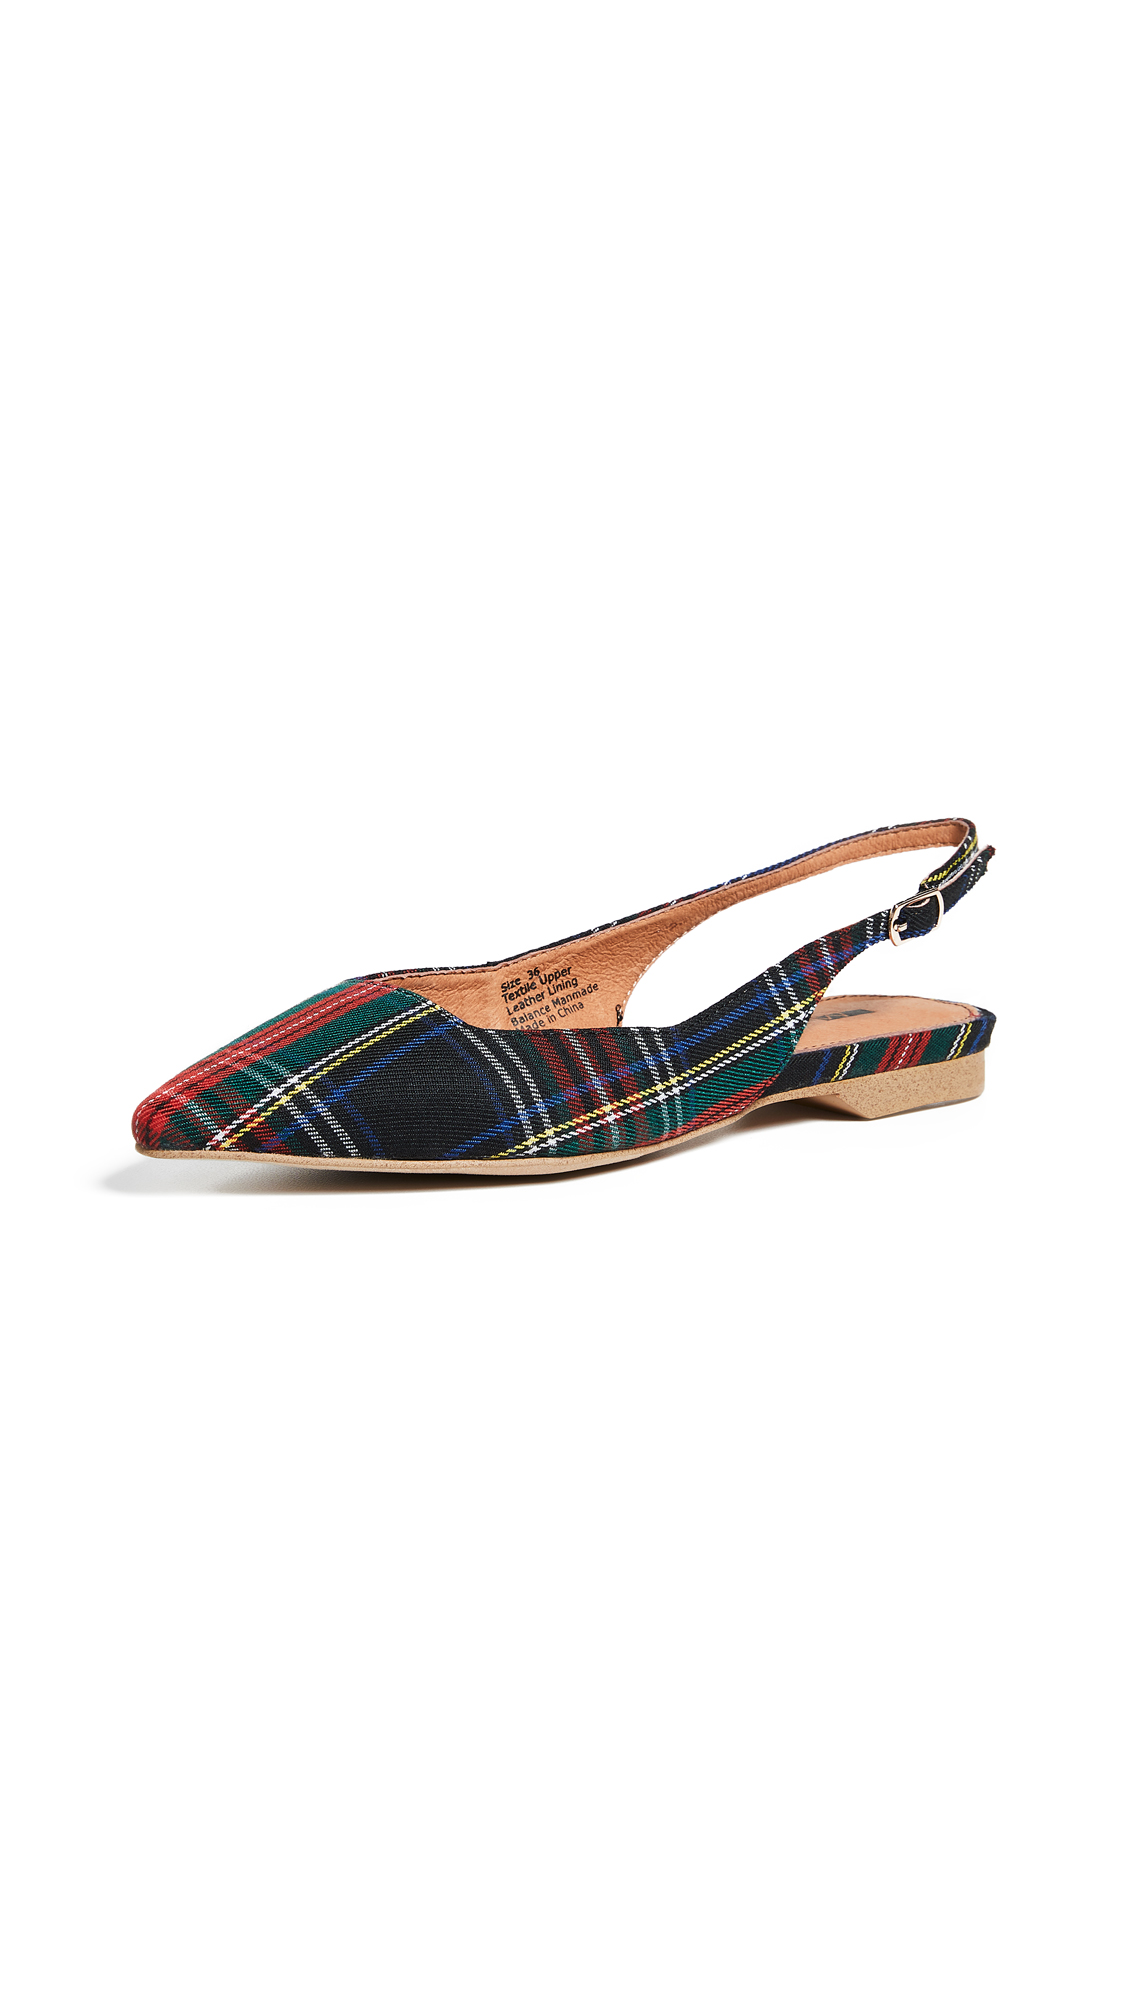 Matiko Lori Point Toe Slingback Flats - Green Tartan